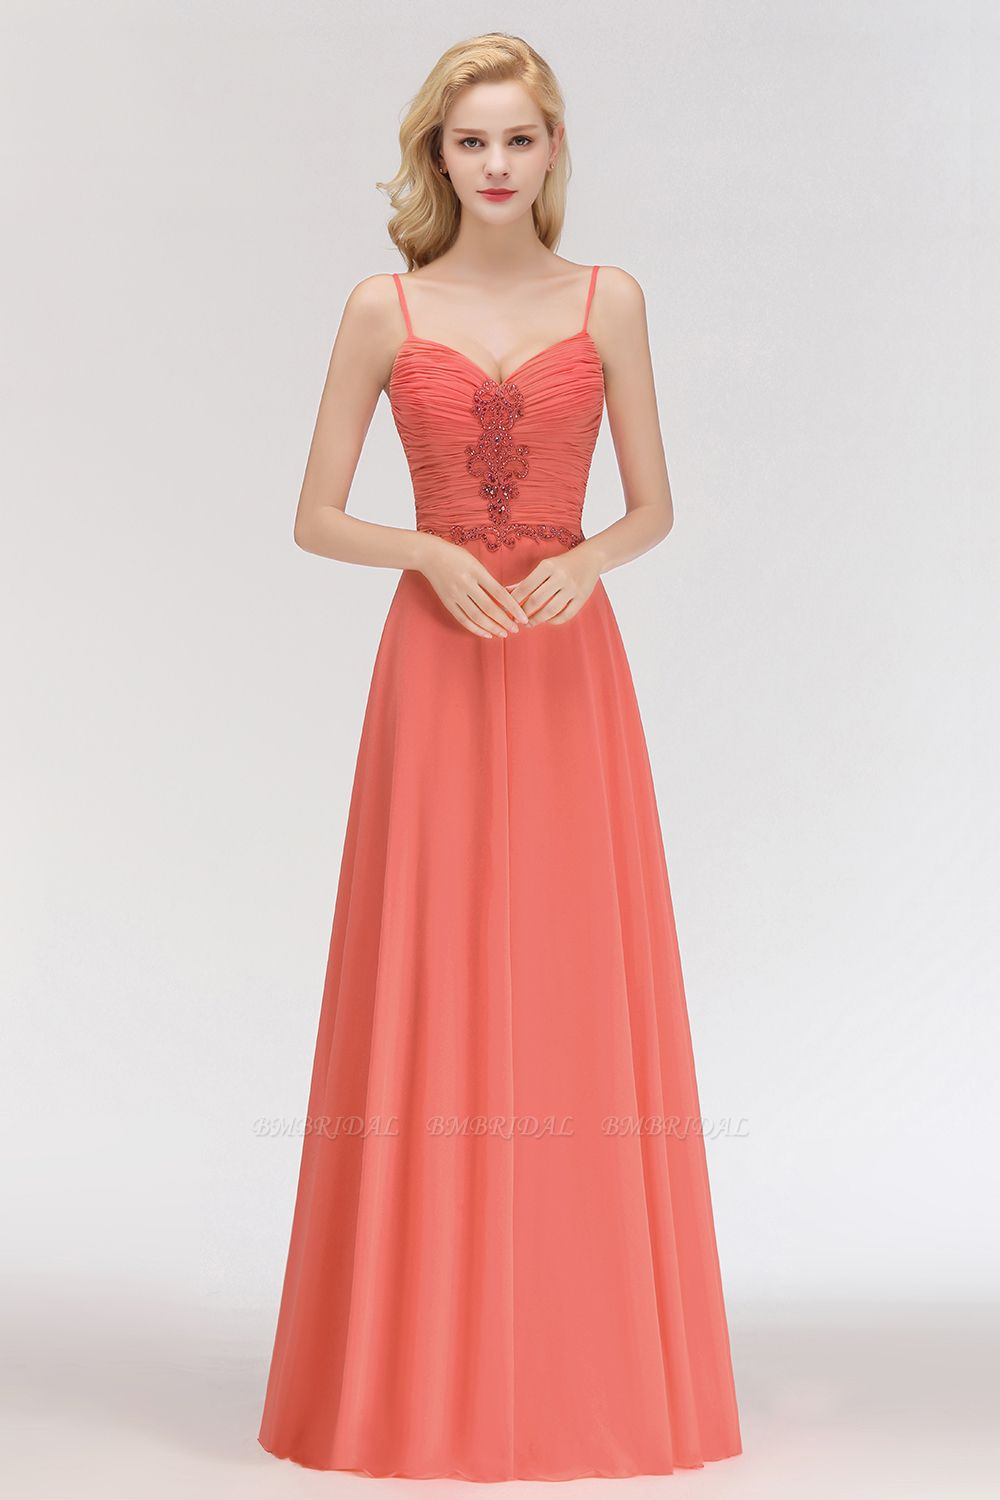 BMbridal Modest Spaghetti-Straps Ruffle Affordable Bridesmaid Dress with Appliques